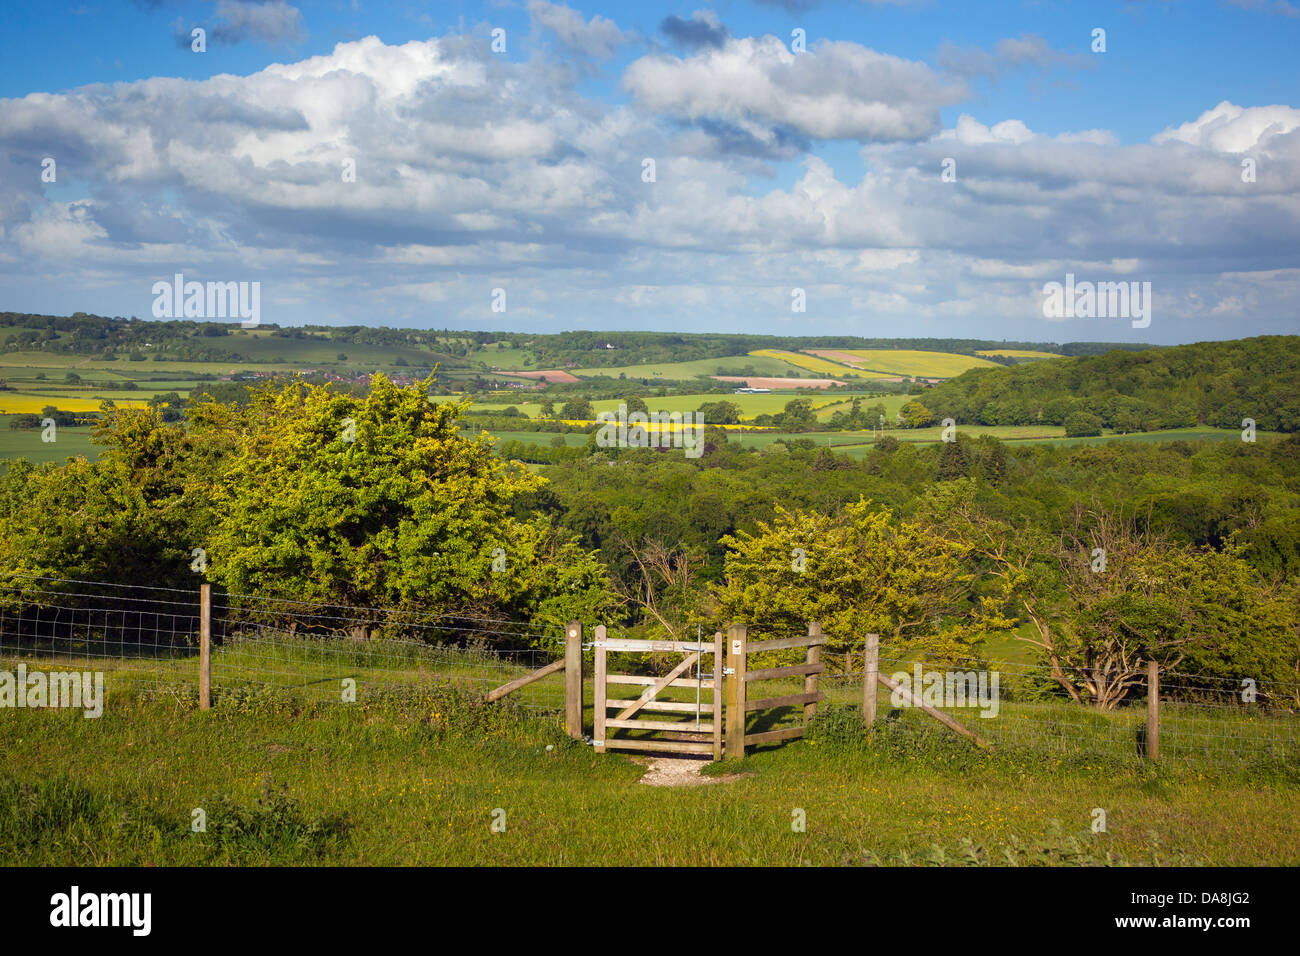 Upper Gade Valley in the Chilterns From Ivinghoe Hills Beds, Herts, Bucks borders Summer - Stock Image